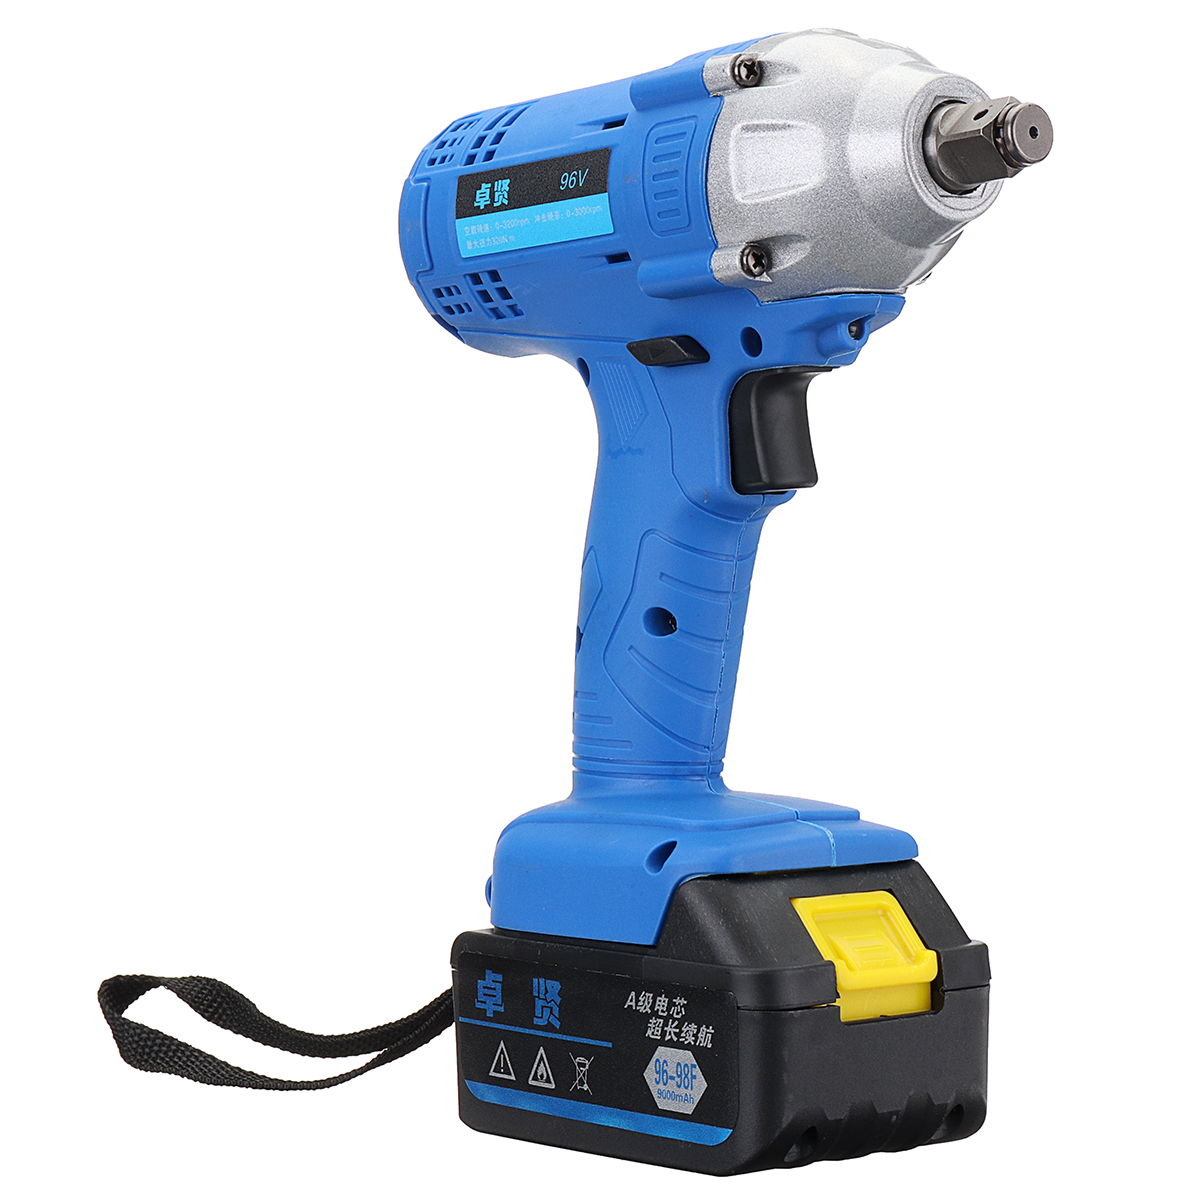 96v Cordless Impact Wrench 1 2 Inch Drive Li Ion Lithium Battery 320nm W Led Light Rechargeable Electric Drill In Wrenches From